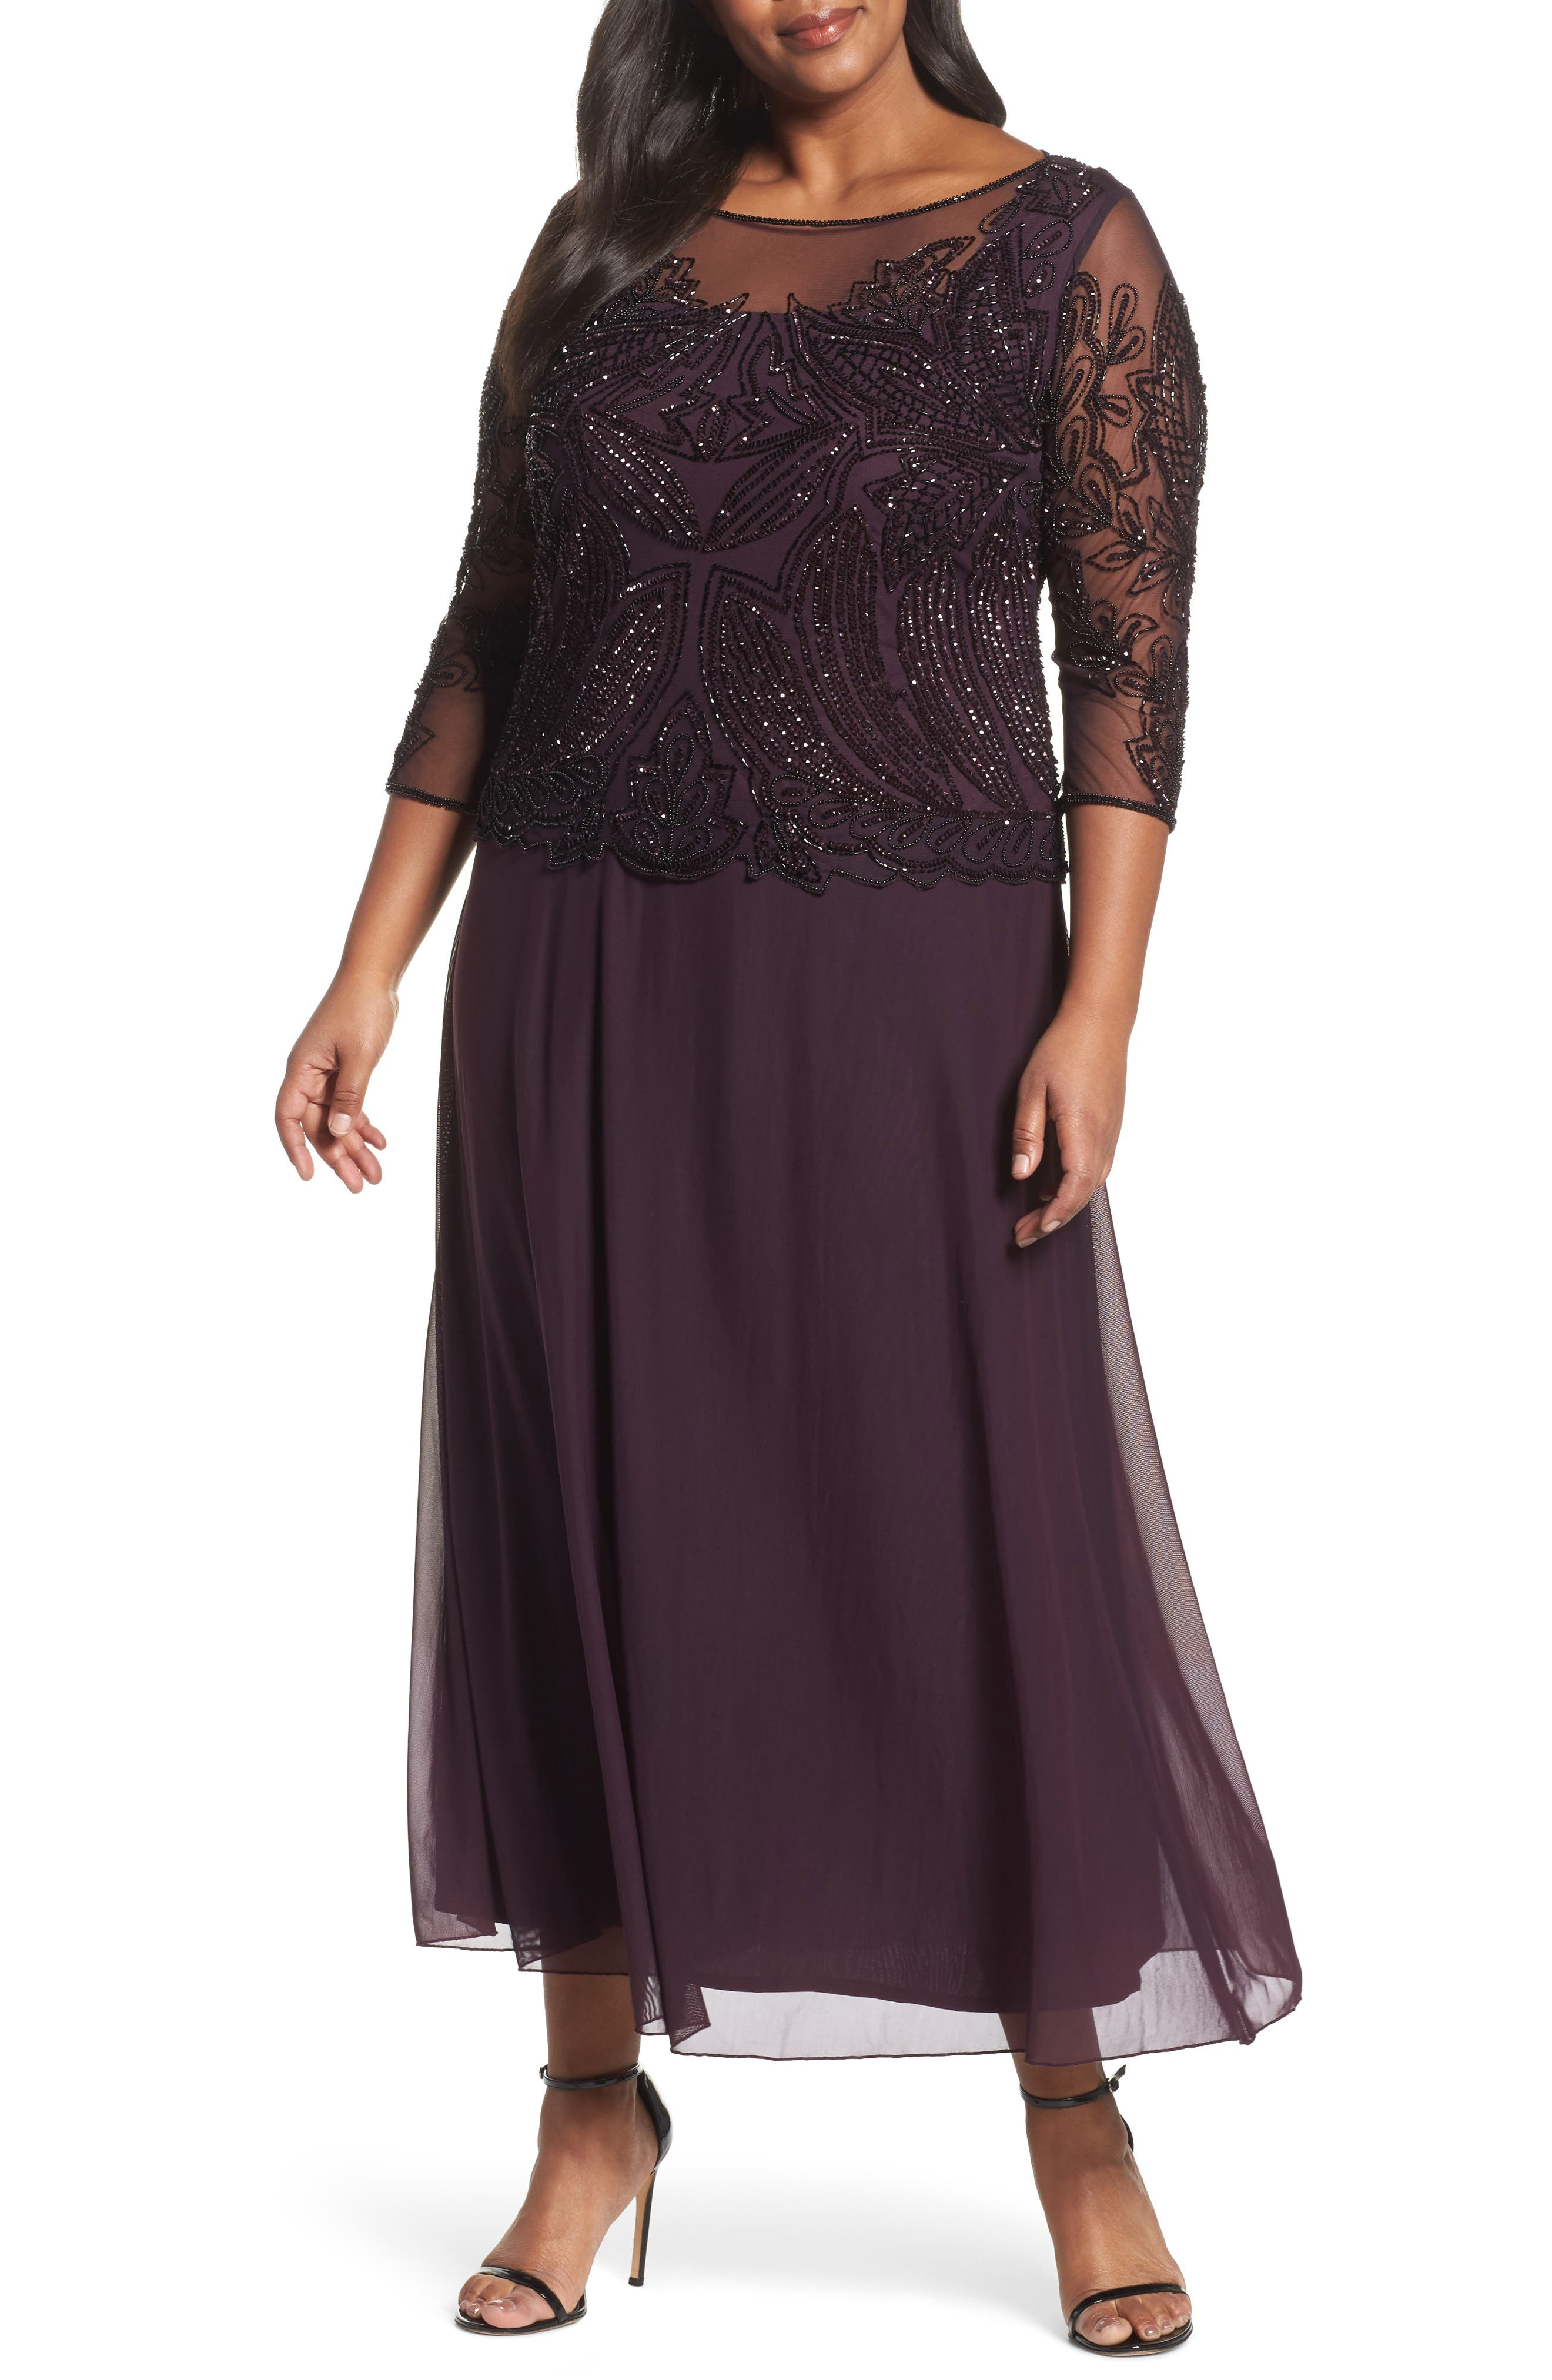 Plus Size Mob Gowns